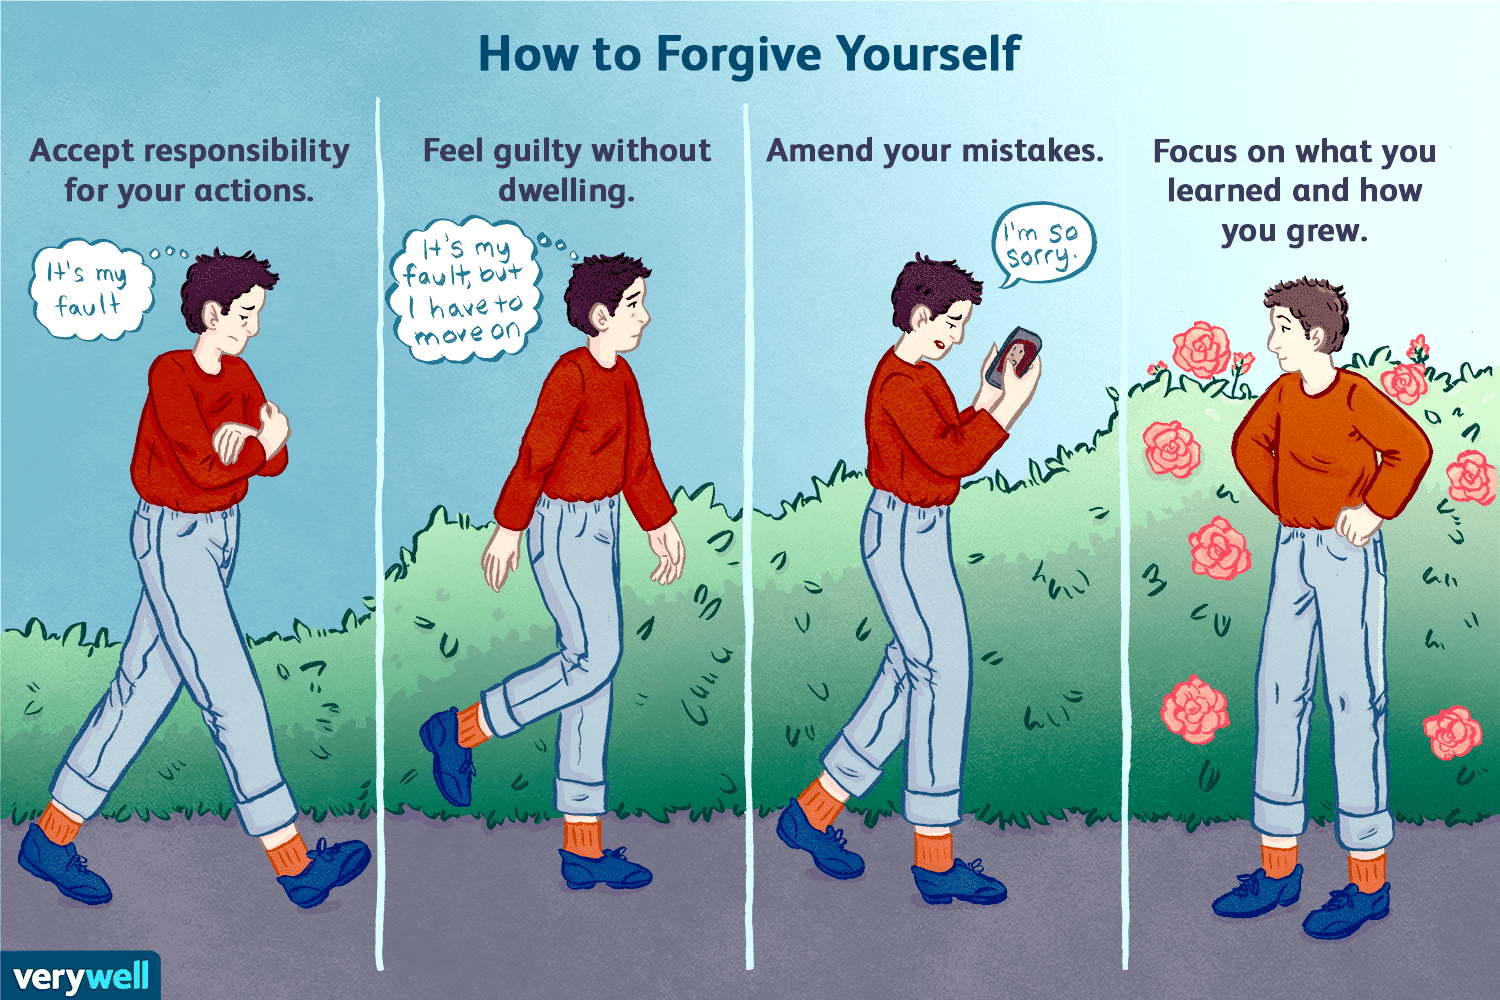 how-to-forgive-yourself-4583819-5c6f2cac46e0fb0001f87c6b